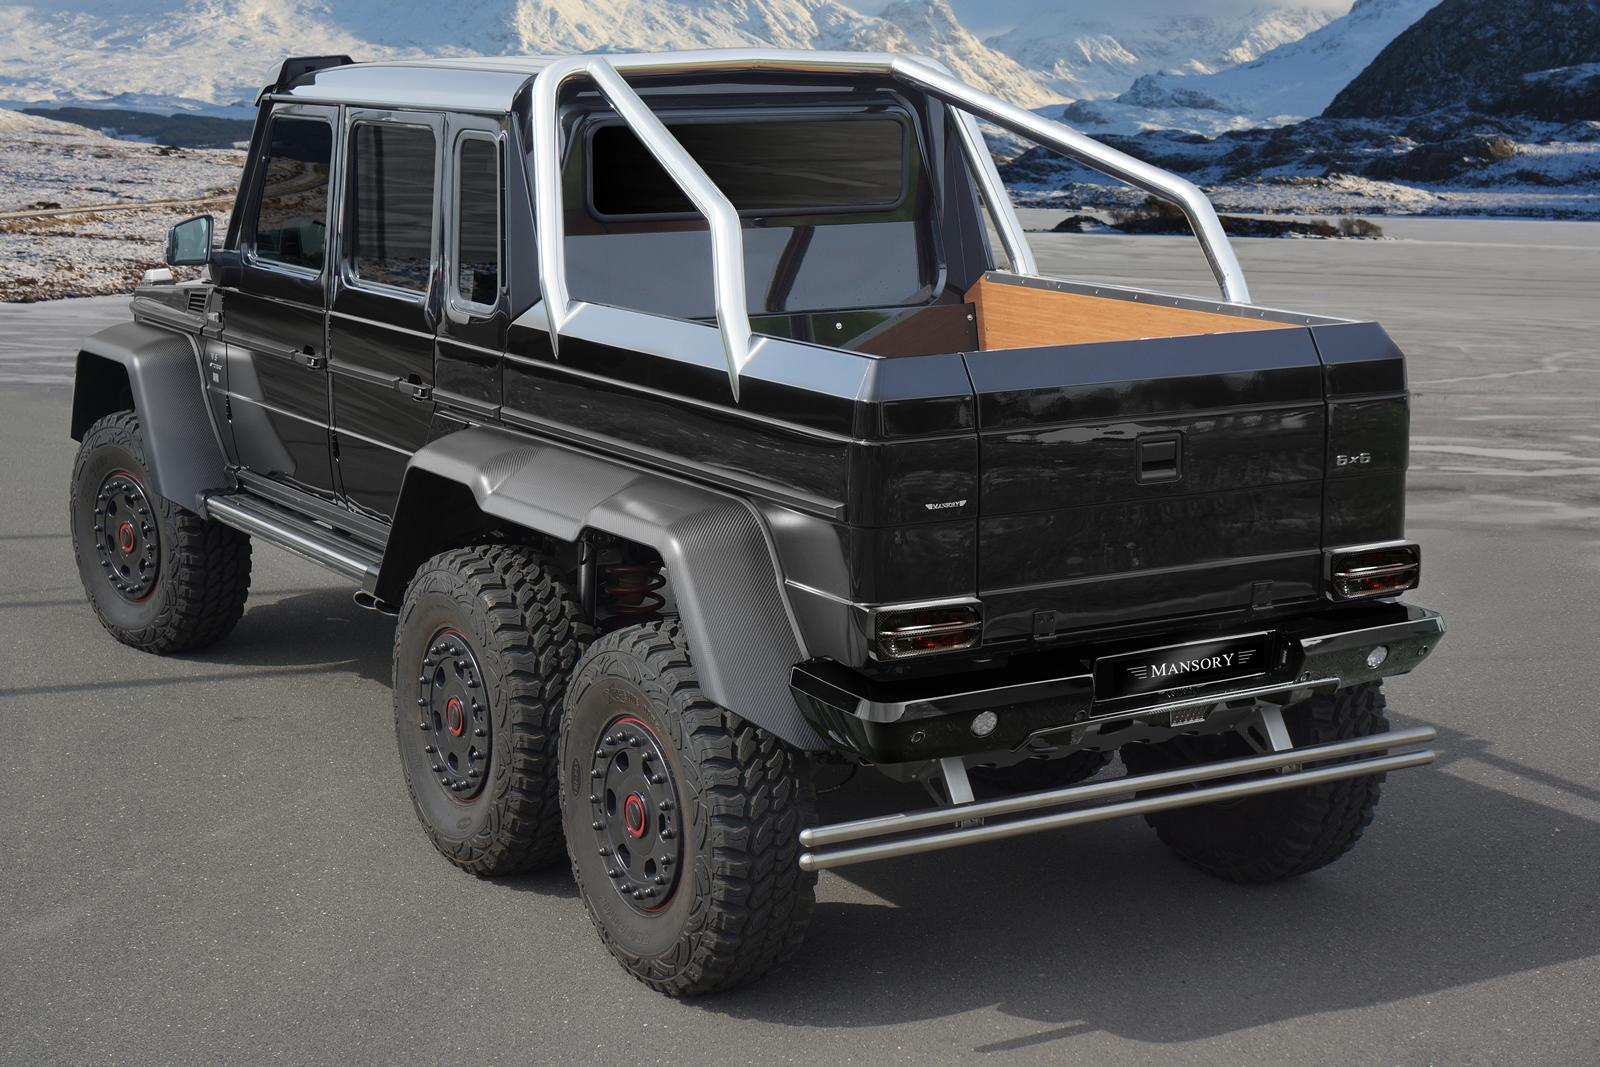 Amg G63 6x6 >> Mansory Mercedes-Benz G63 AMG 6x6 - Picture 101869